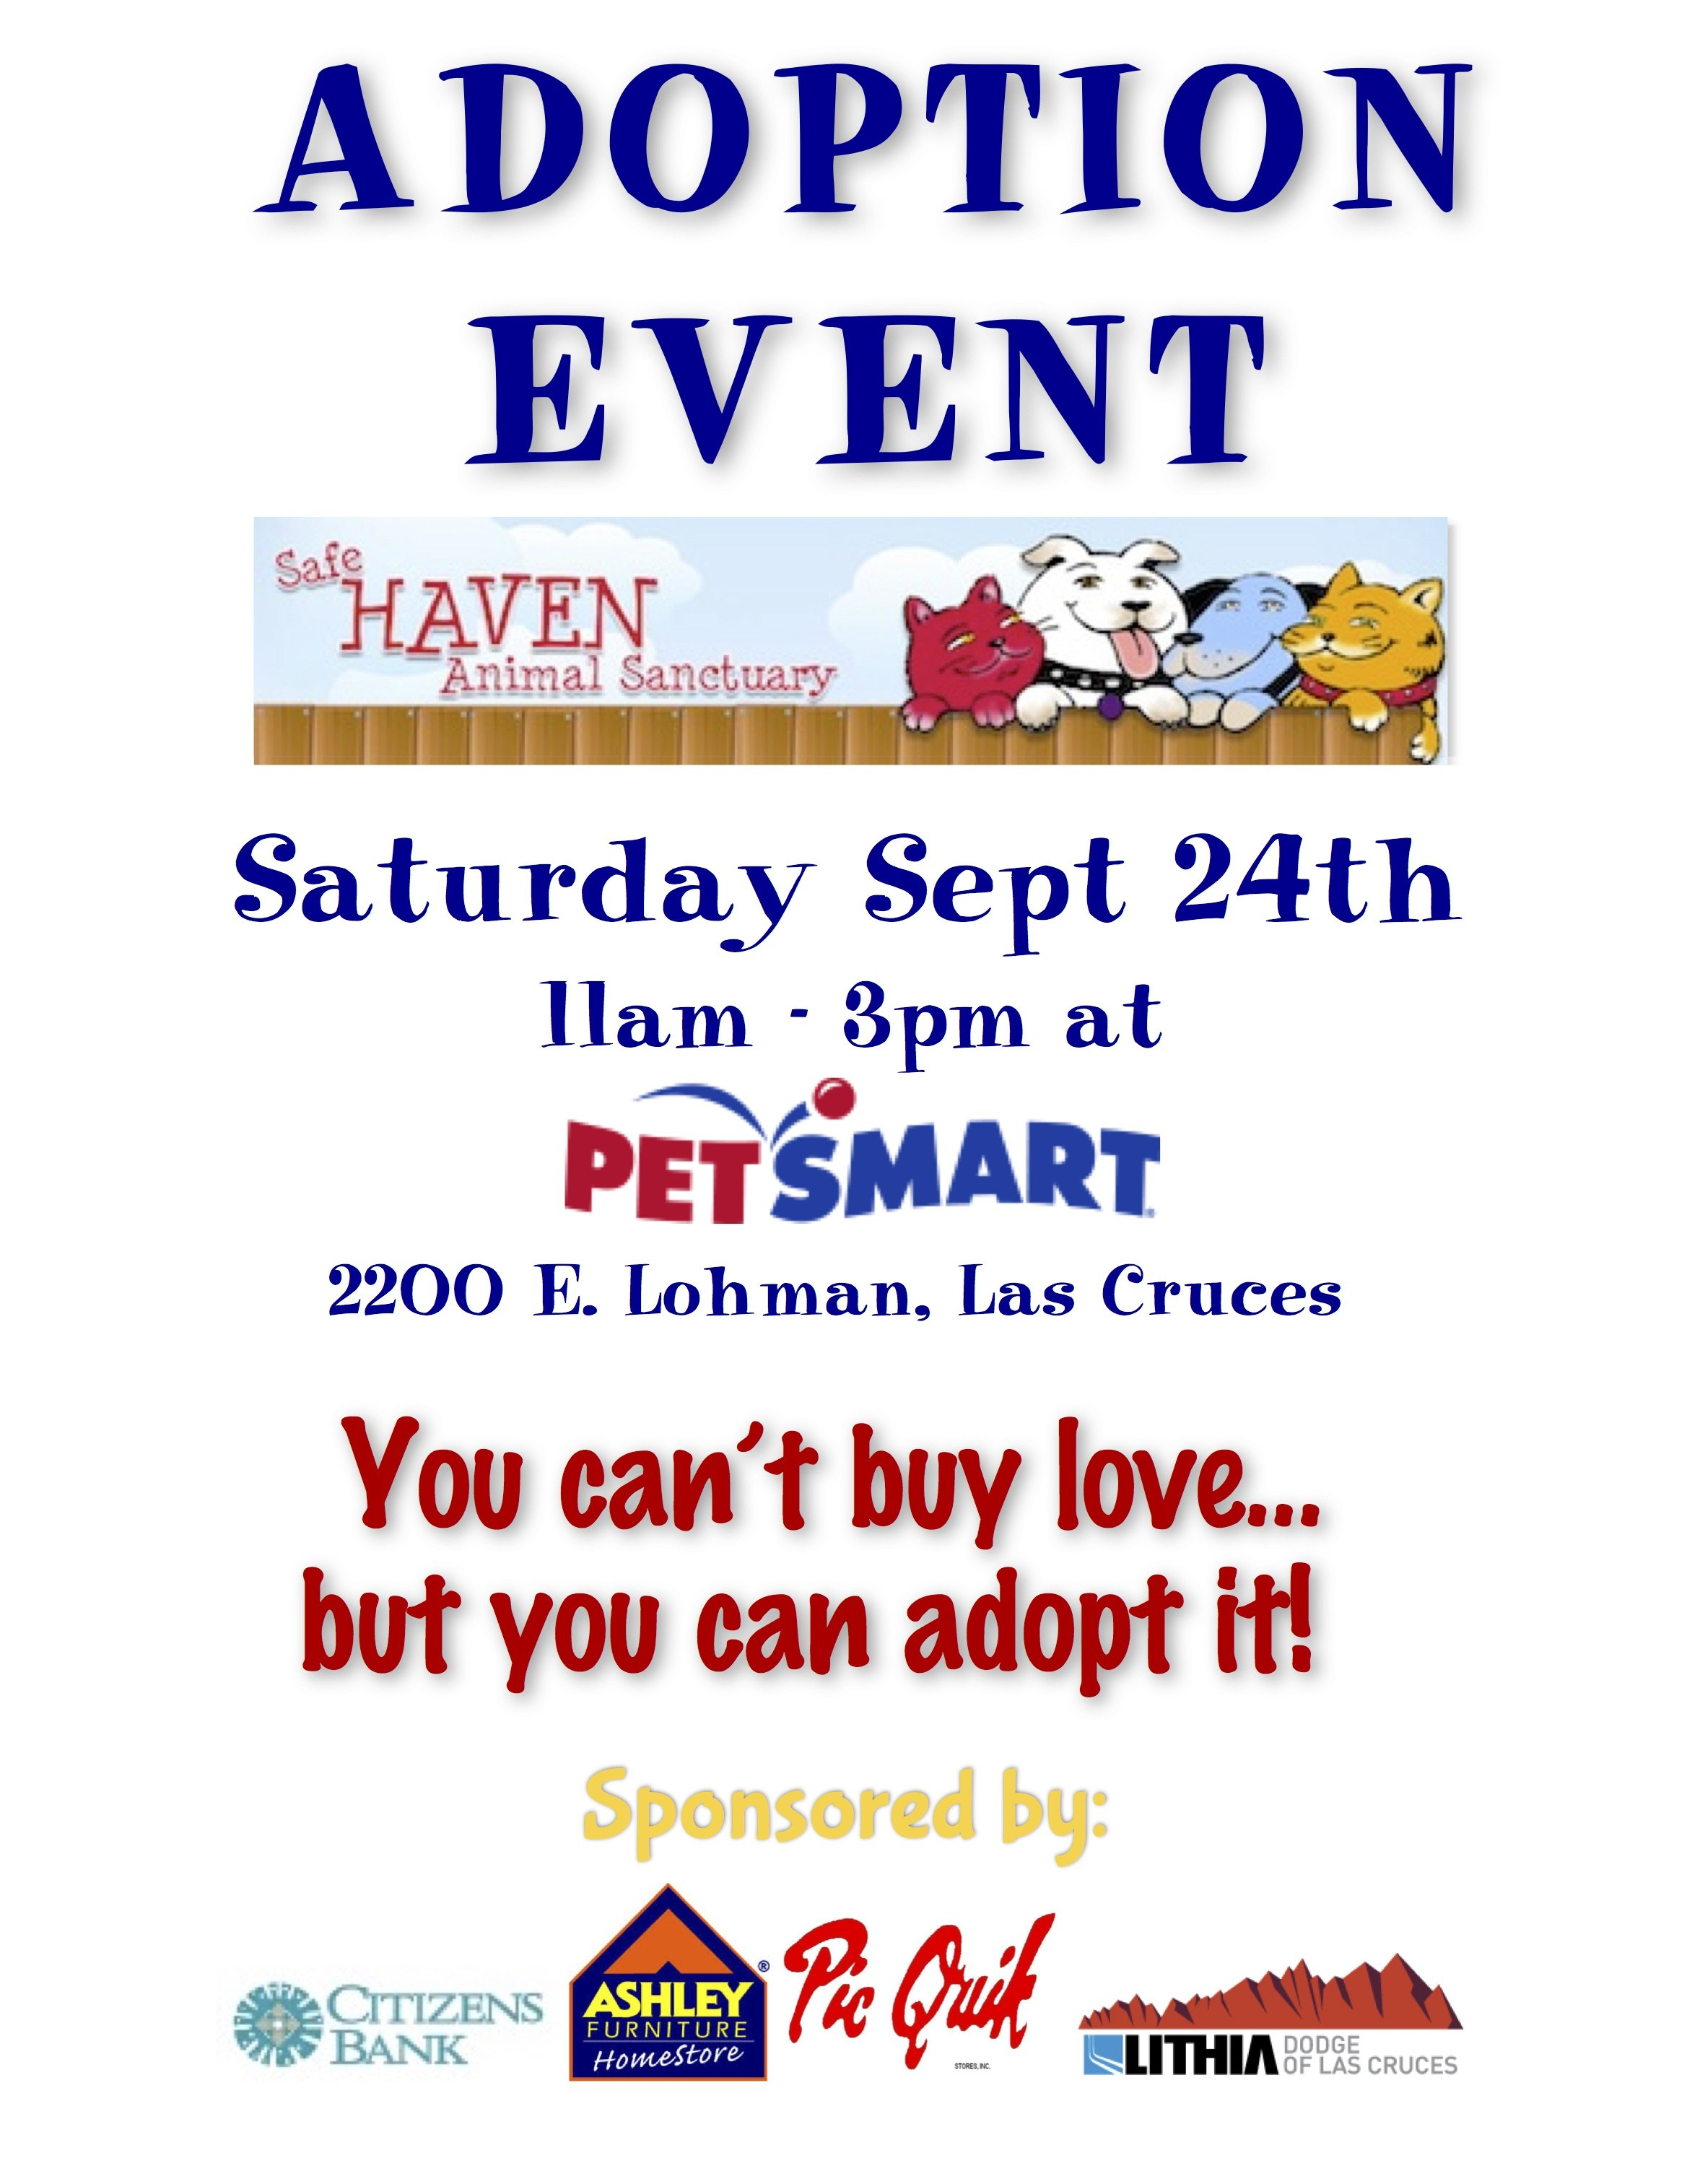 Adoption Event at PetSmart Safe Haven Animal Sanctuary